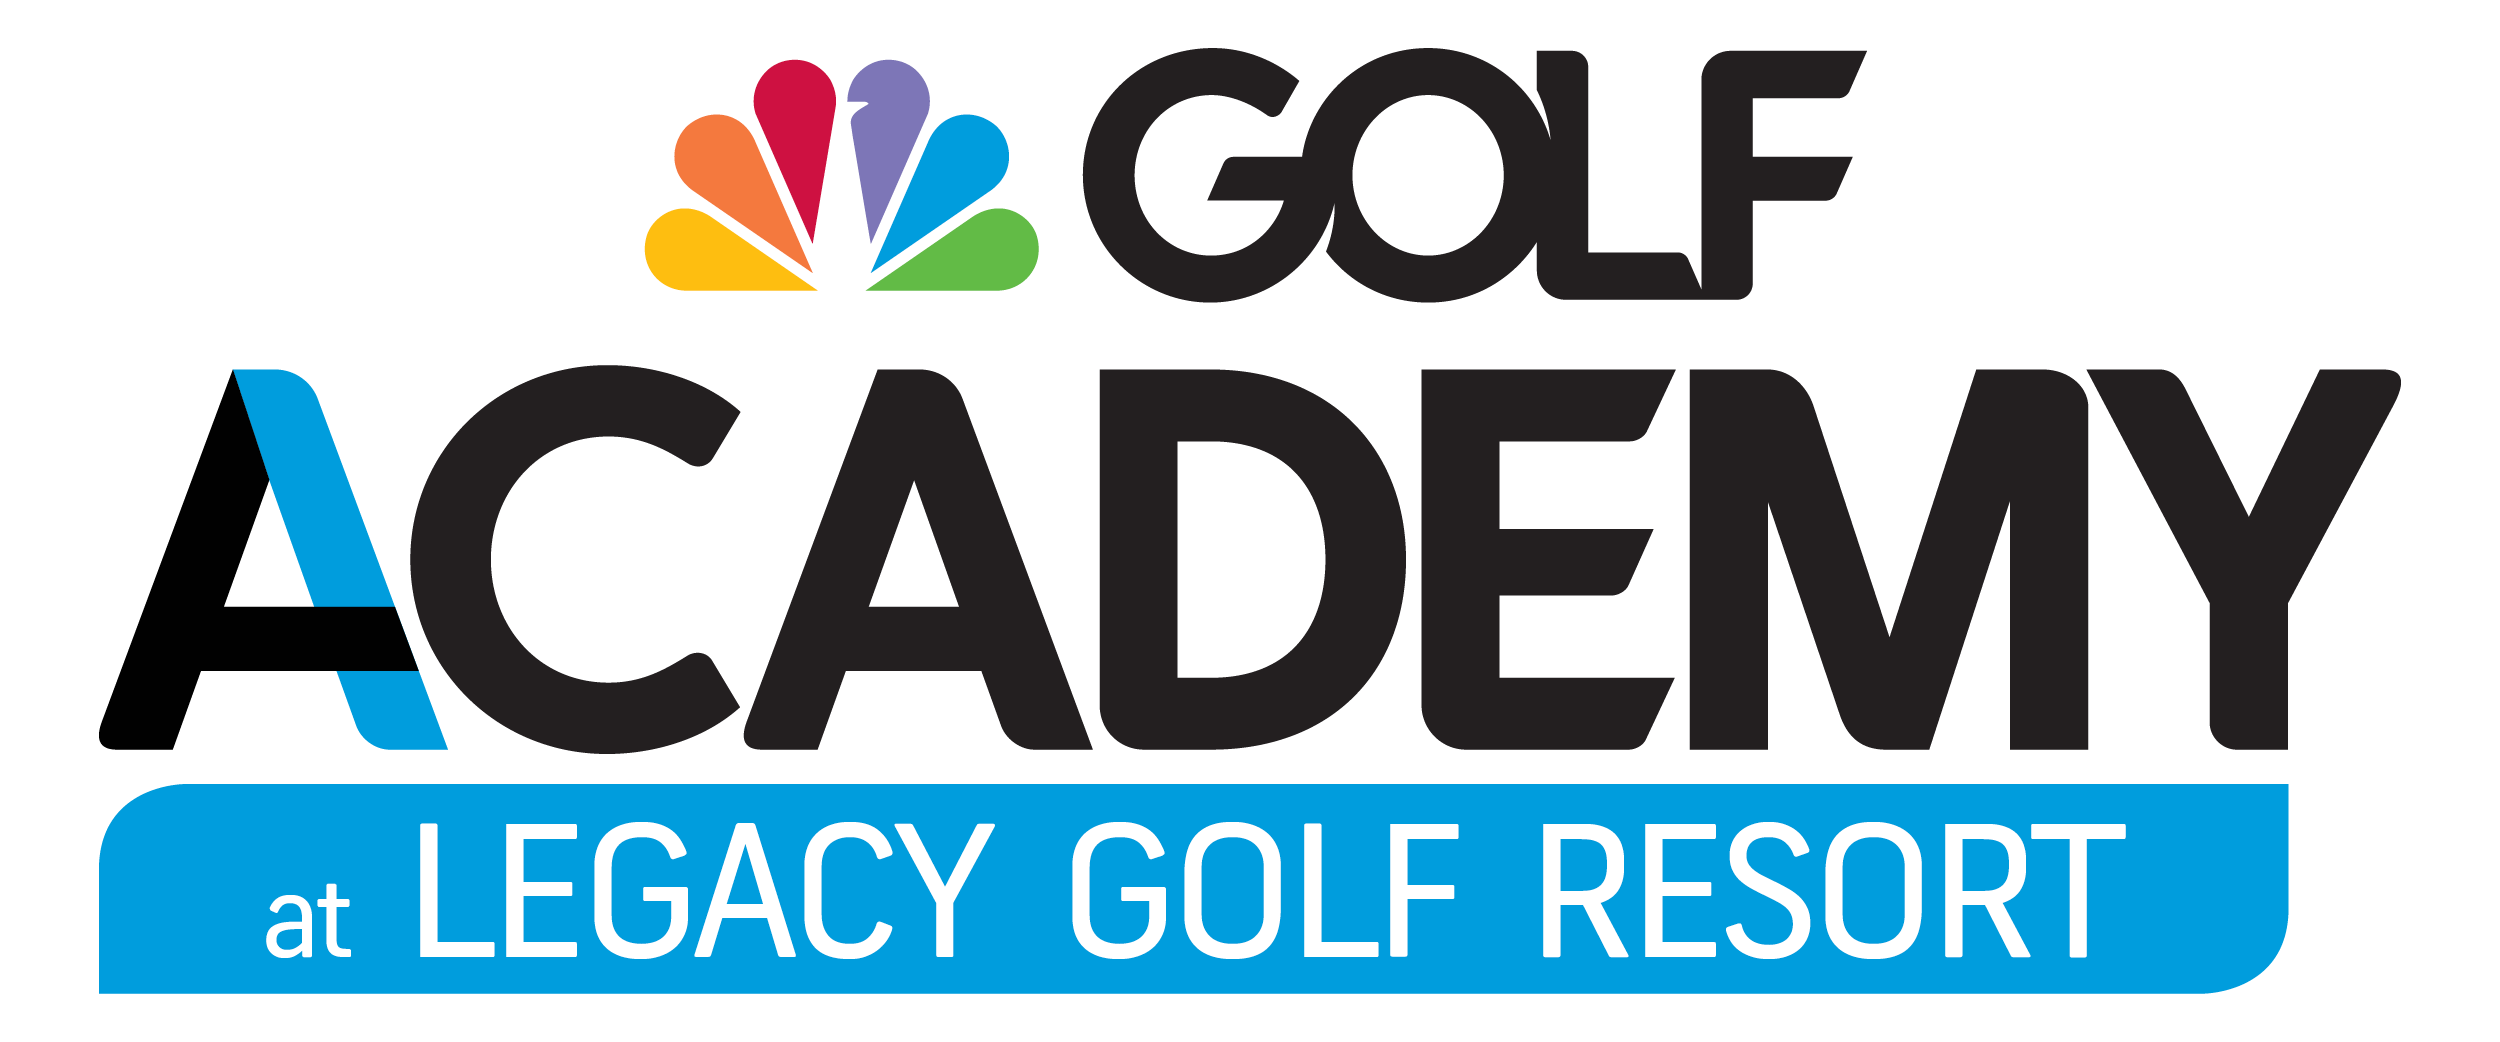 Arizona Golf Channel Academy